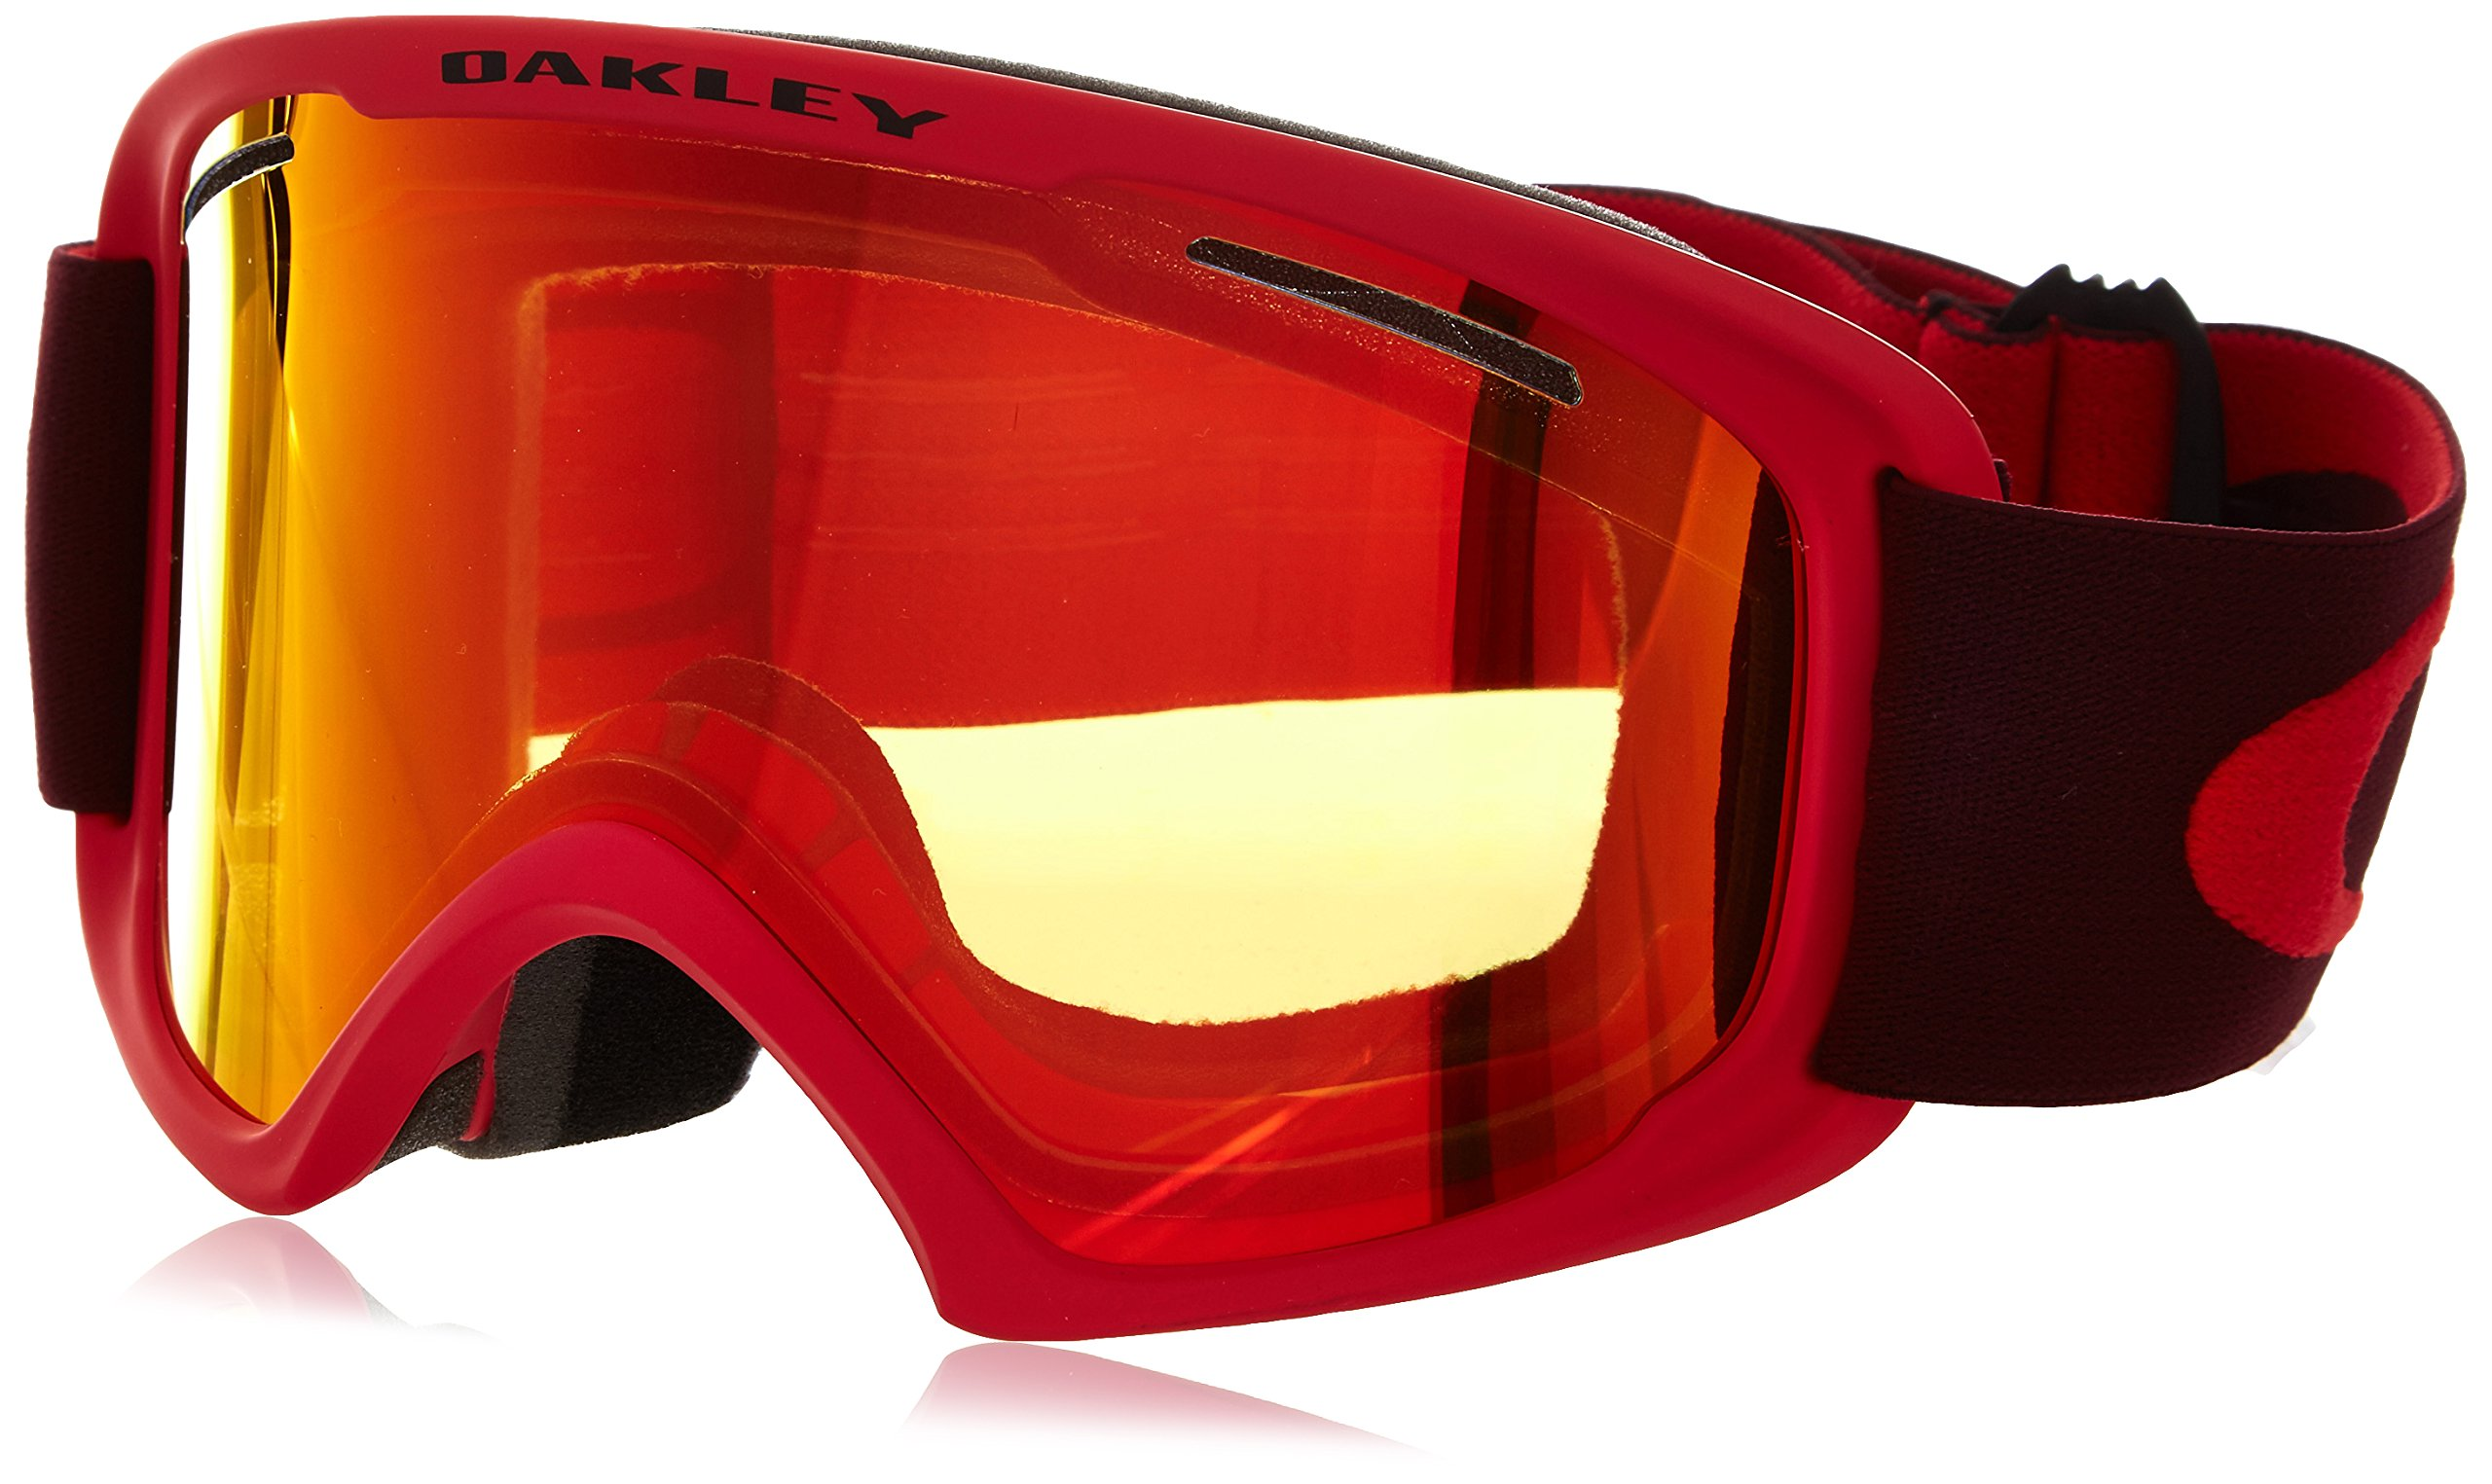 Oakley OO7045-12 O2 XL Eyewear, Red Rhone, Fire Iridium Lens by Oakley